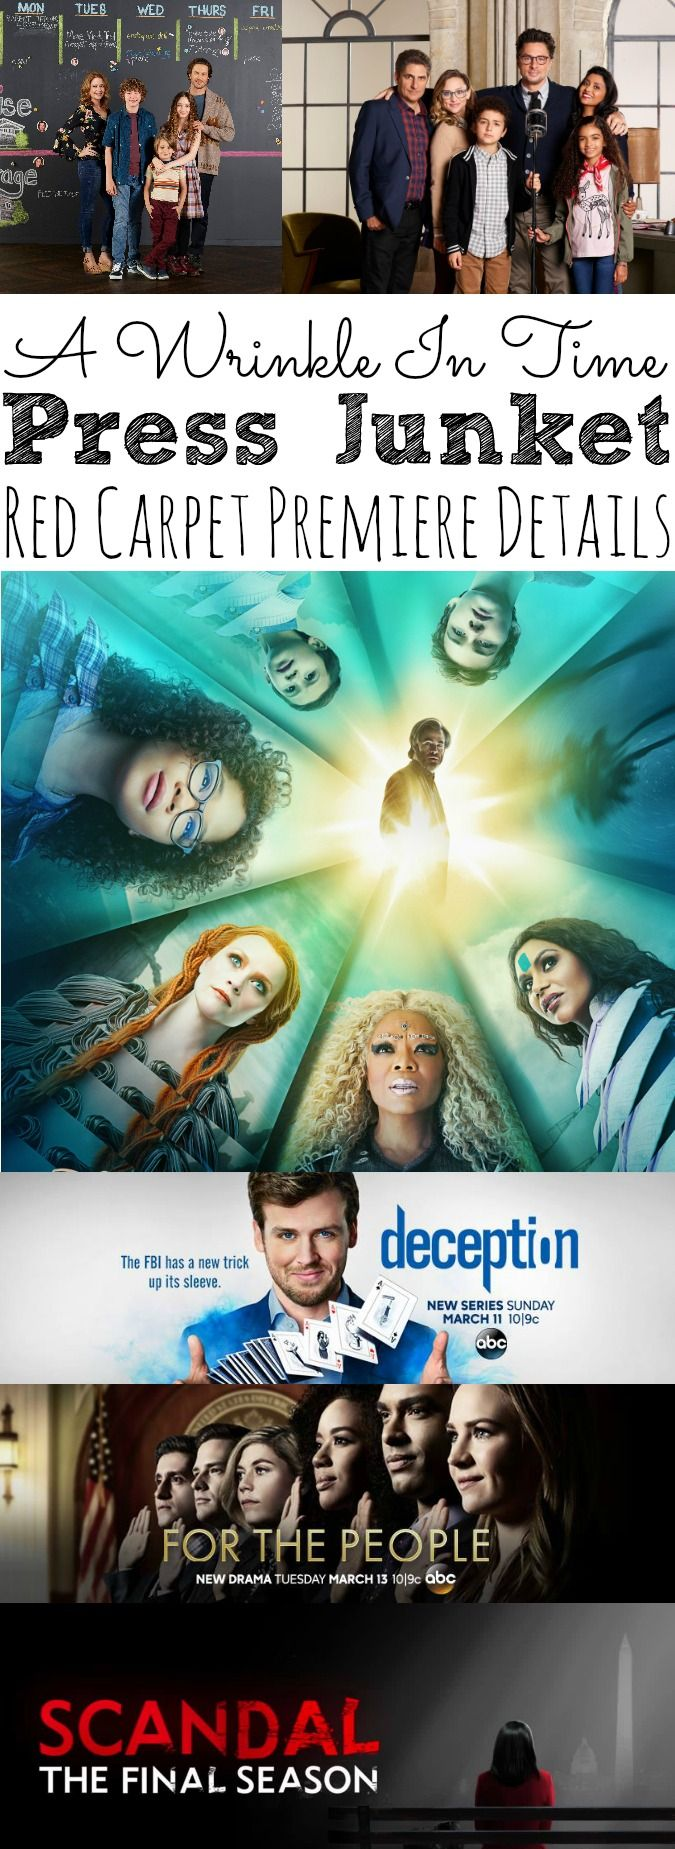 Finding The Tesseract In A Wrinkle In Time Movie Press Junket. Check out all the details for my upcoming A Wrinkle In Time Movie Event - simplytodaylife.com